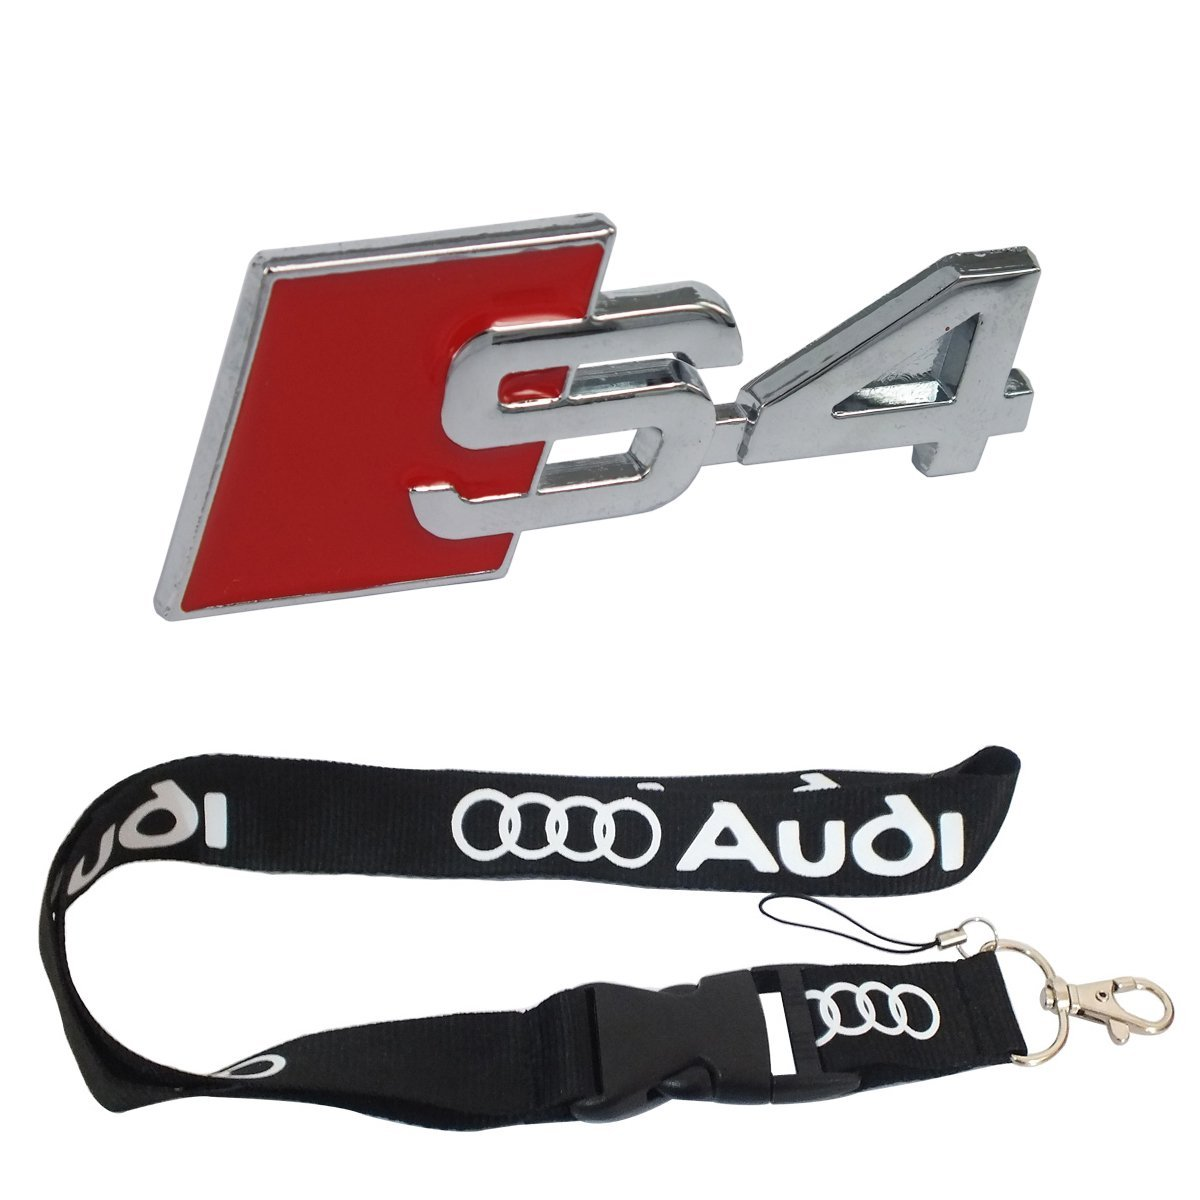 Cheap Audi Badge Light Find Audi Badge Light Deals On Line At - Audi emblem